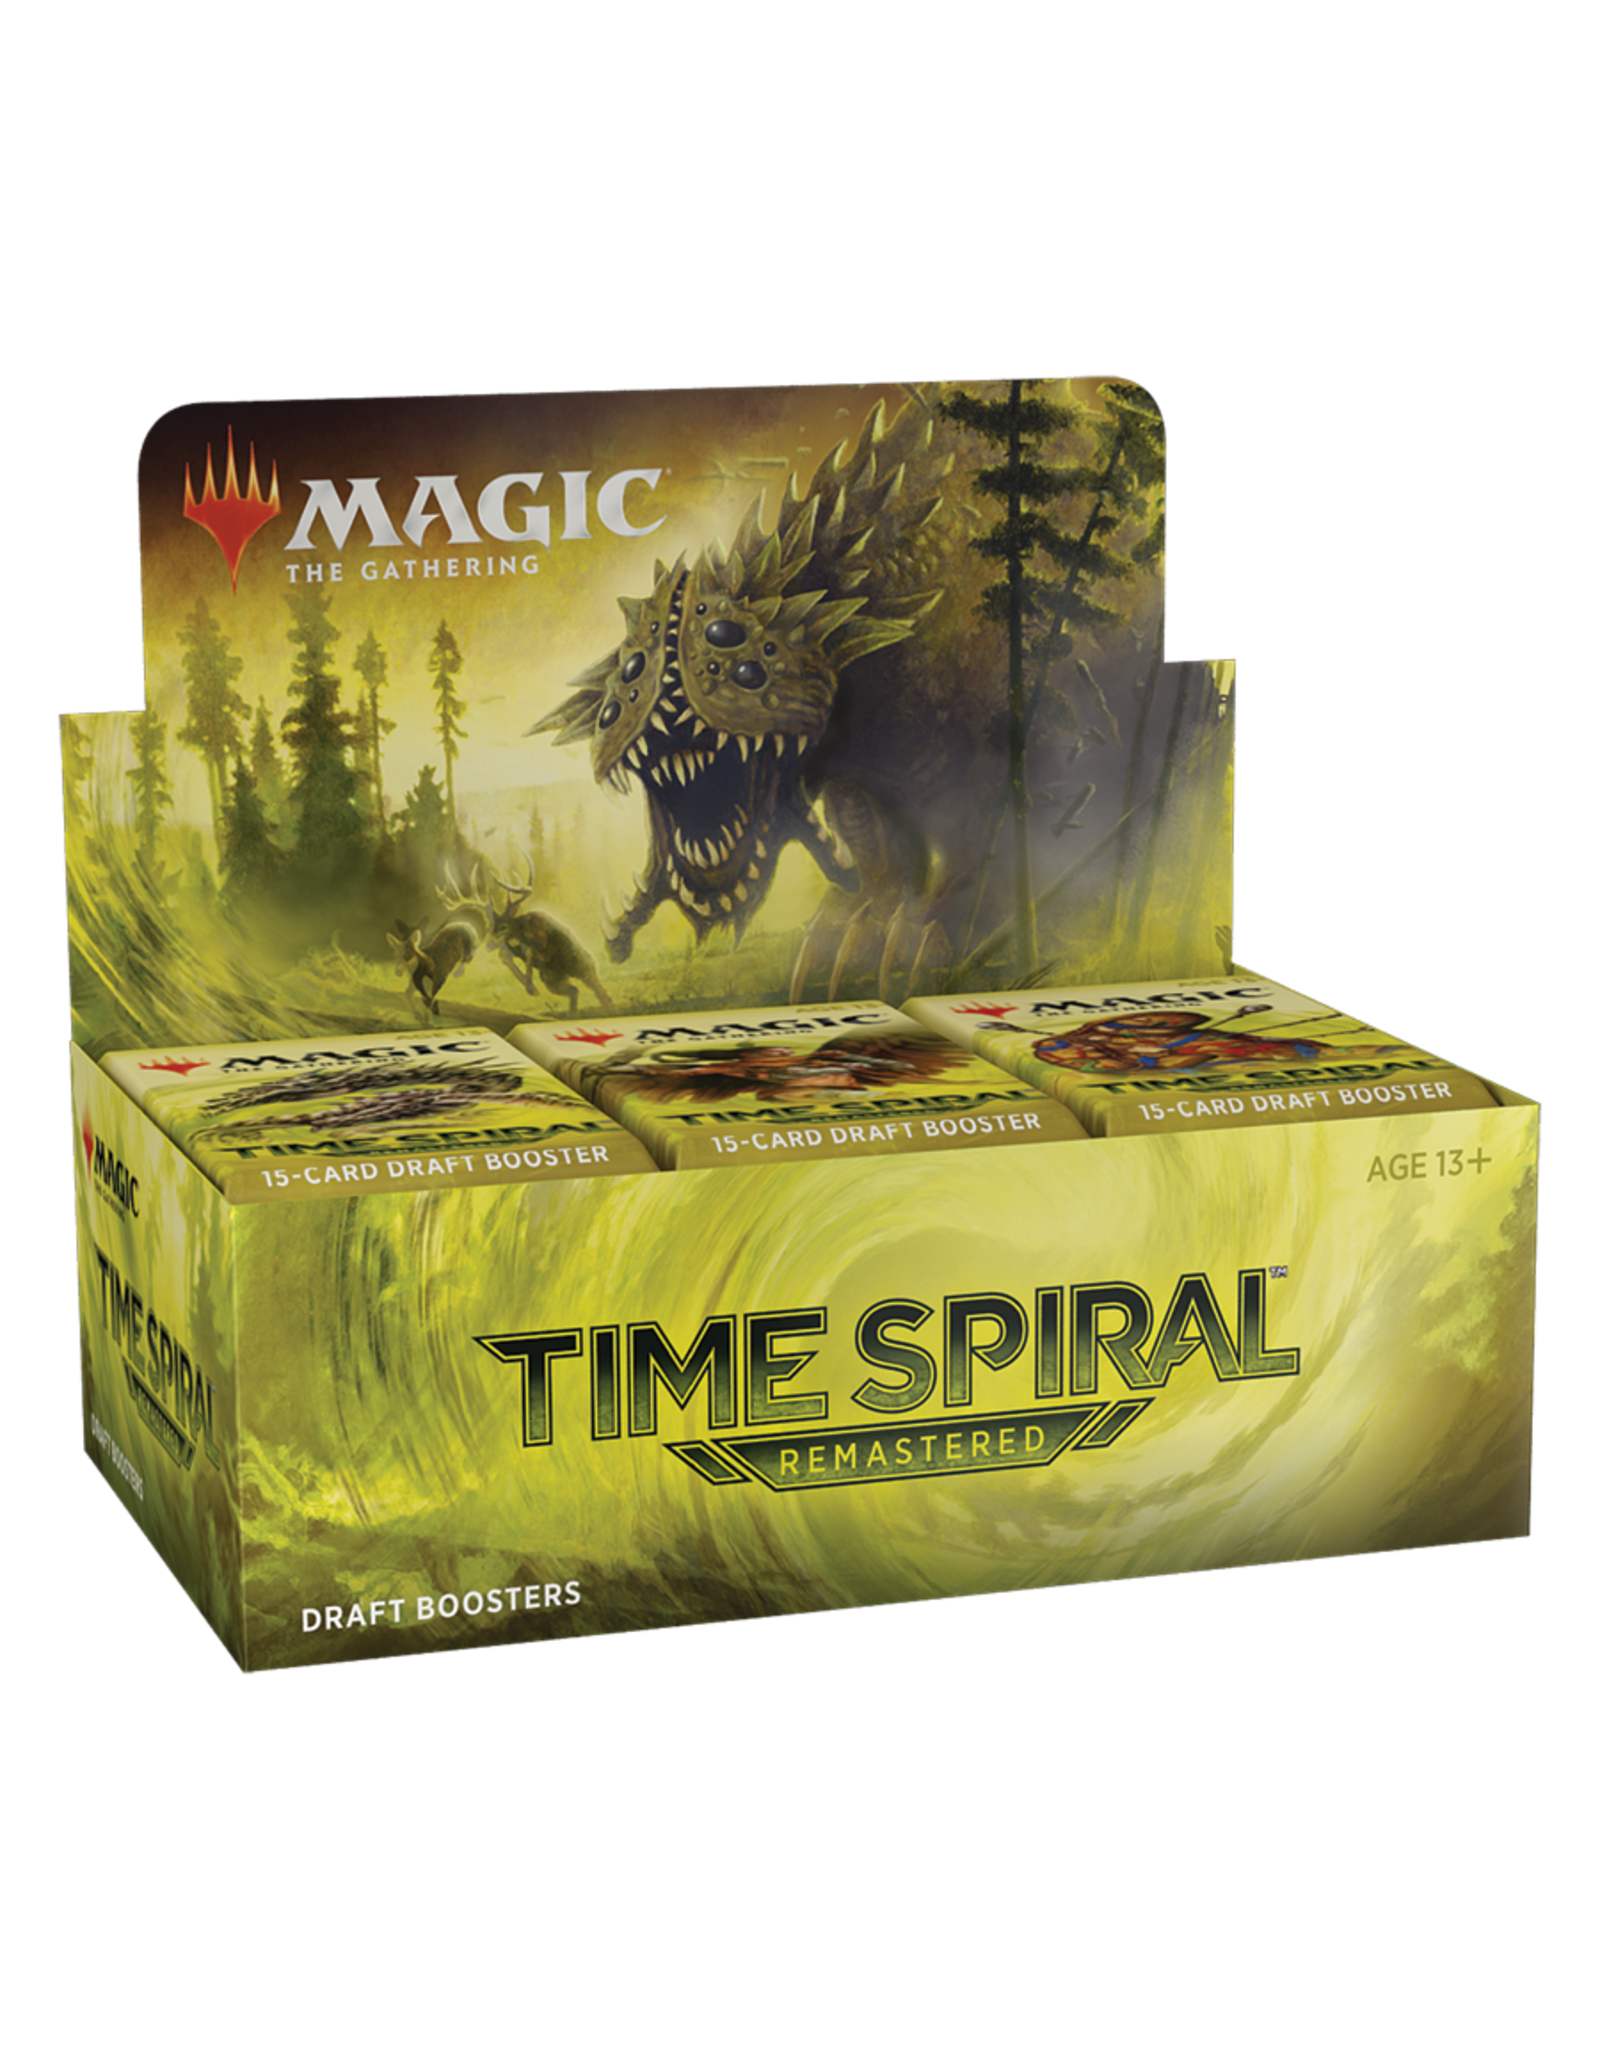 Wizards of the Coast MTG: Time Spiral Remastered Draft Booster Box